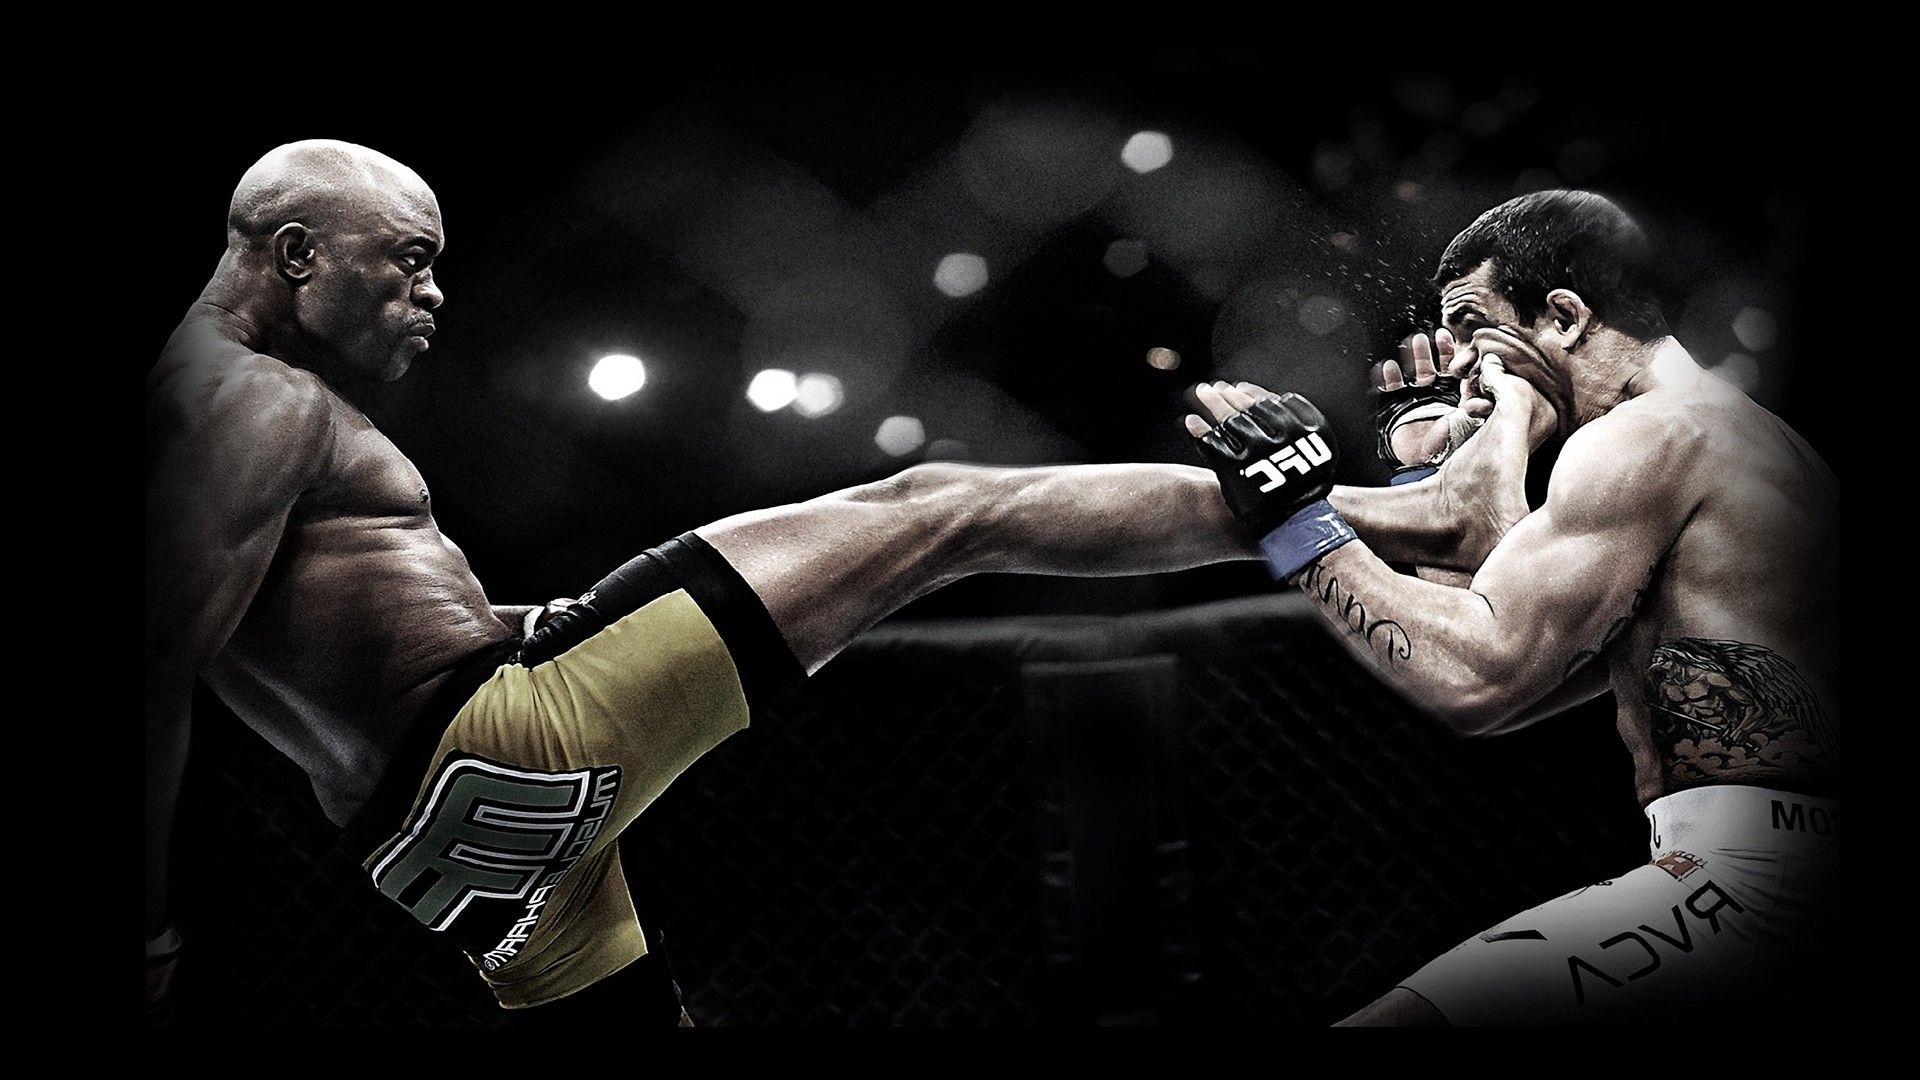 MMA Wallpapers   Top MMA Backgrounds   WallpaperAccess 1920x1080